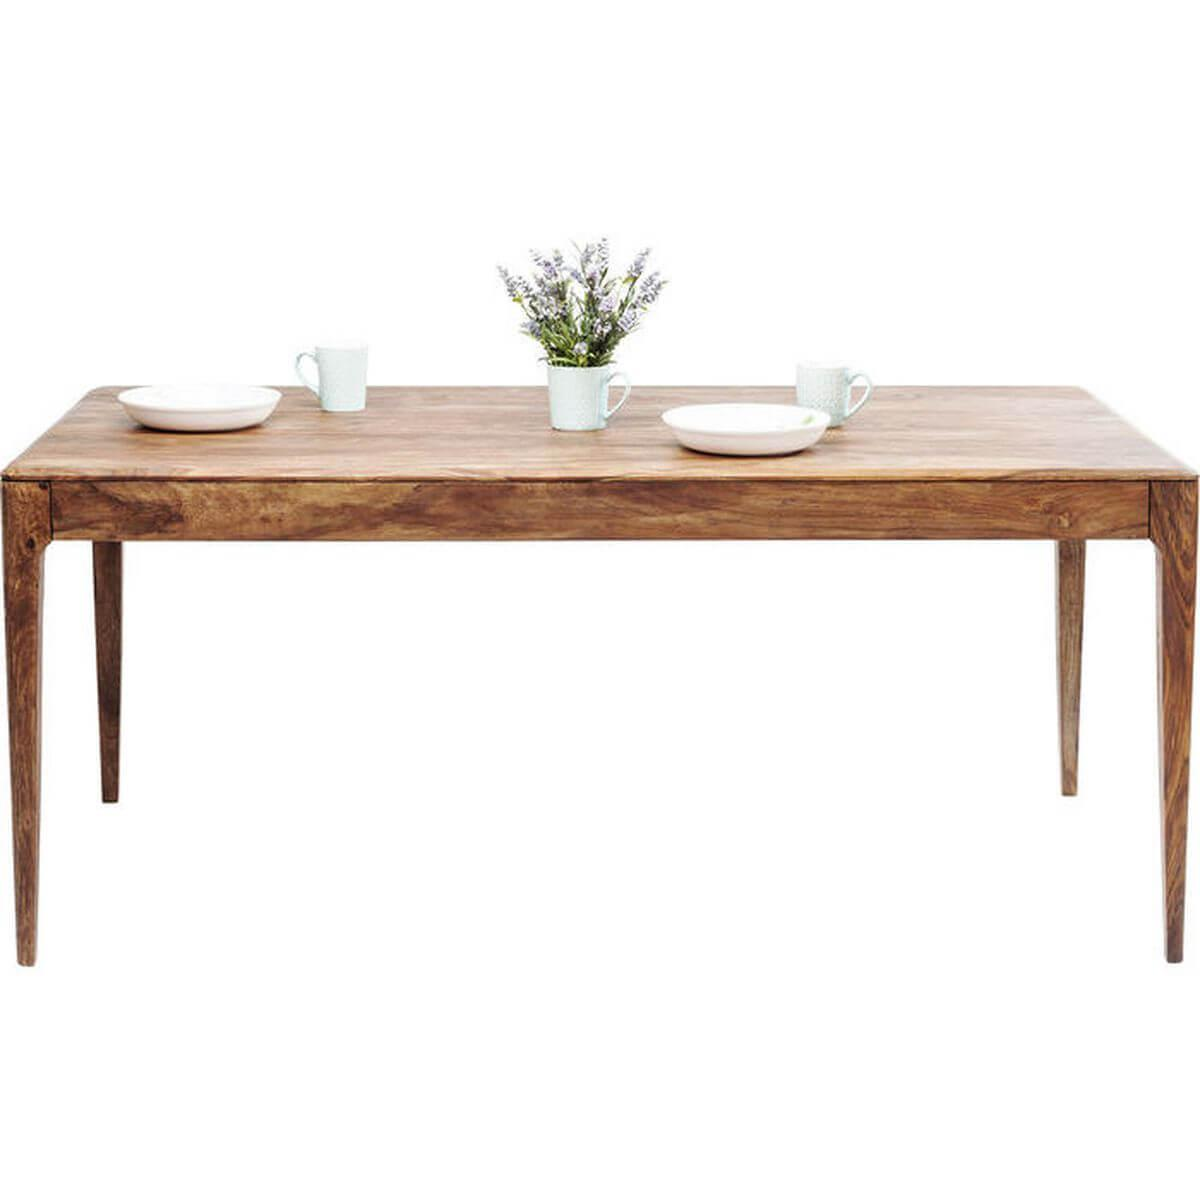 Table Brooklyn Nature Kare Design 200x100cm